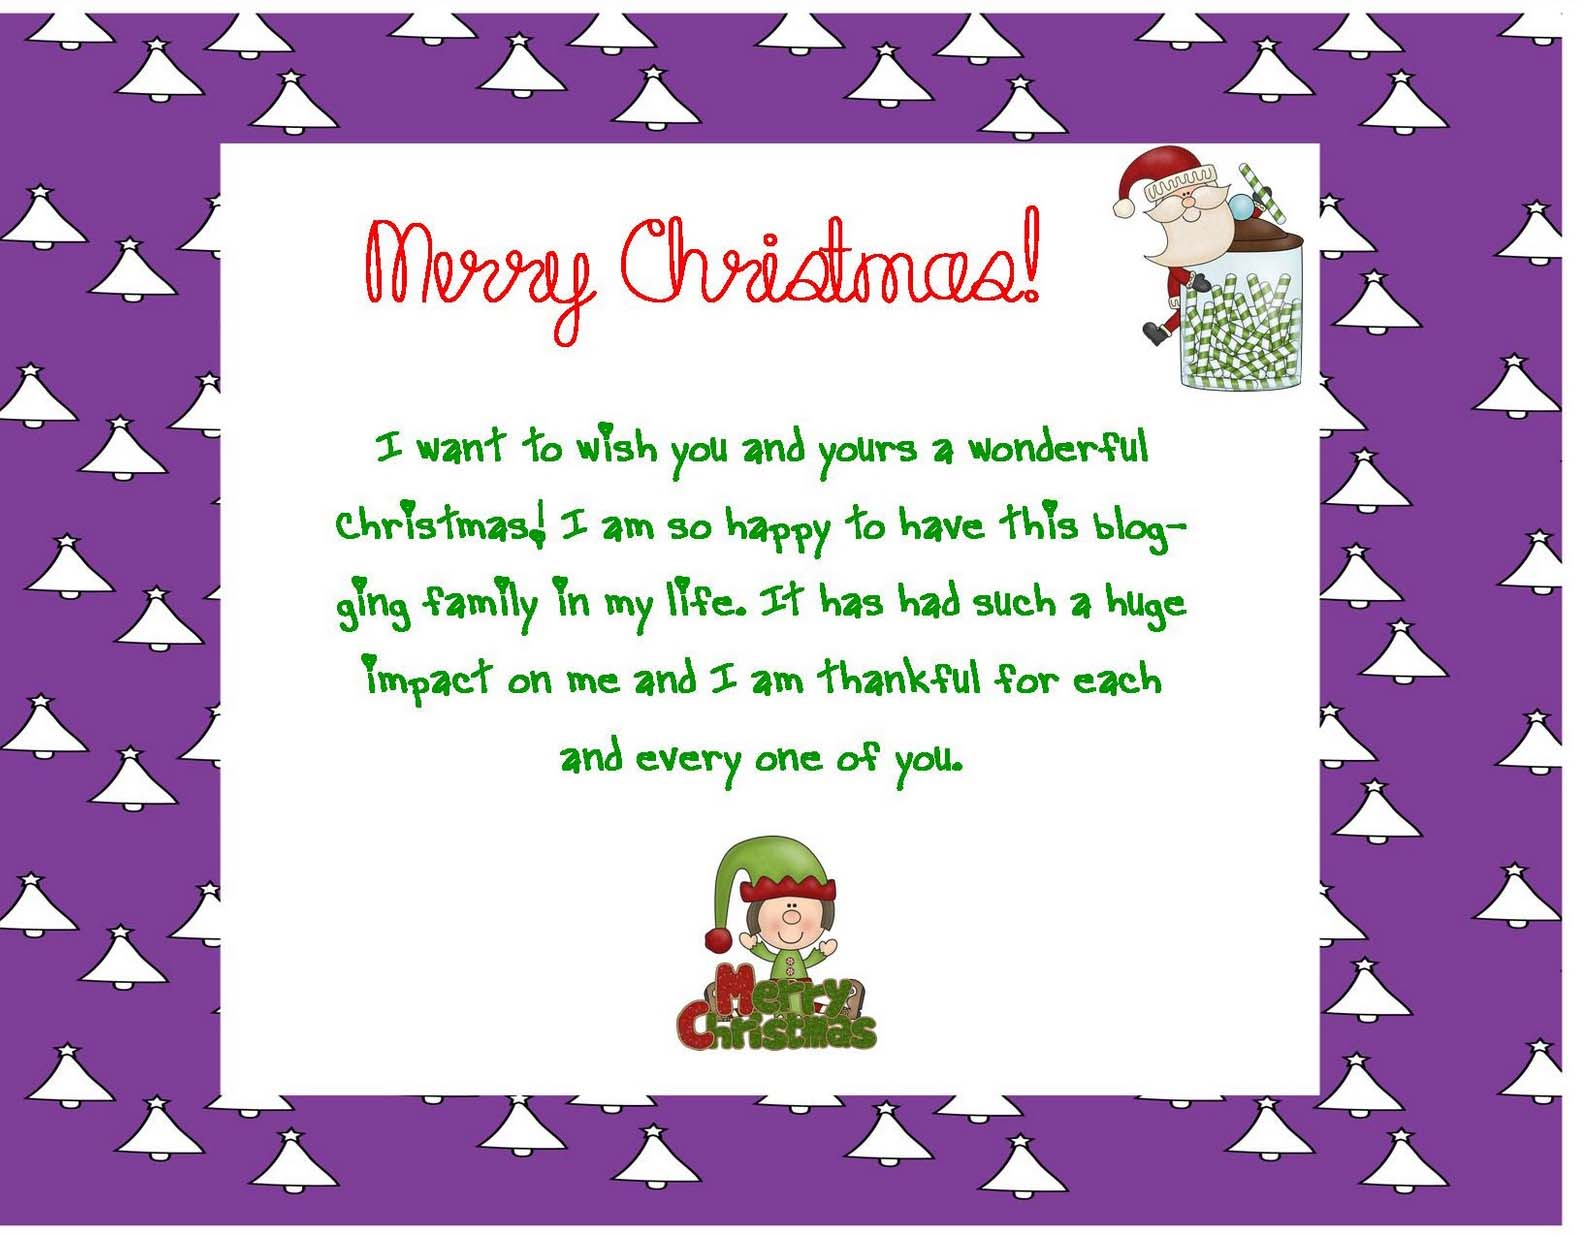 Christmas greeting card messages christmas day greetings christmas greeting card messages kristyandbryce Choice Image